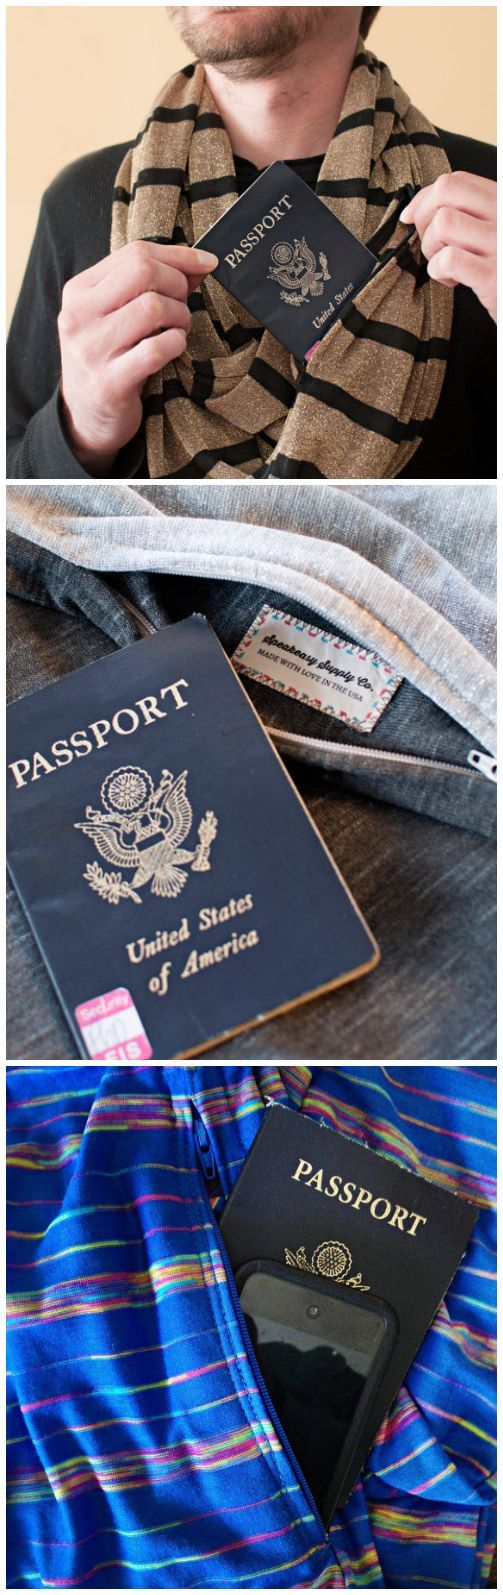 Travel scarf with hidden pocket for passport